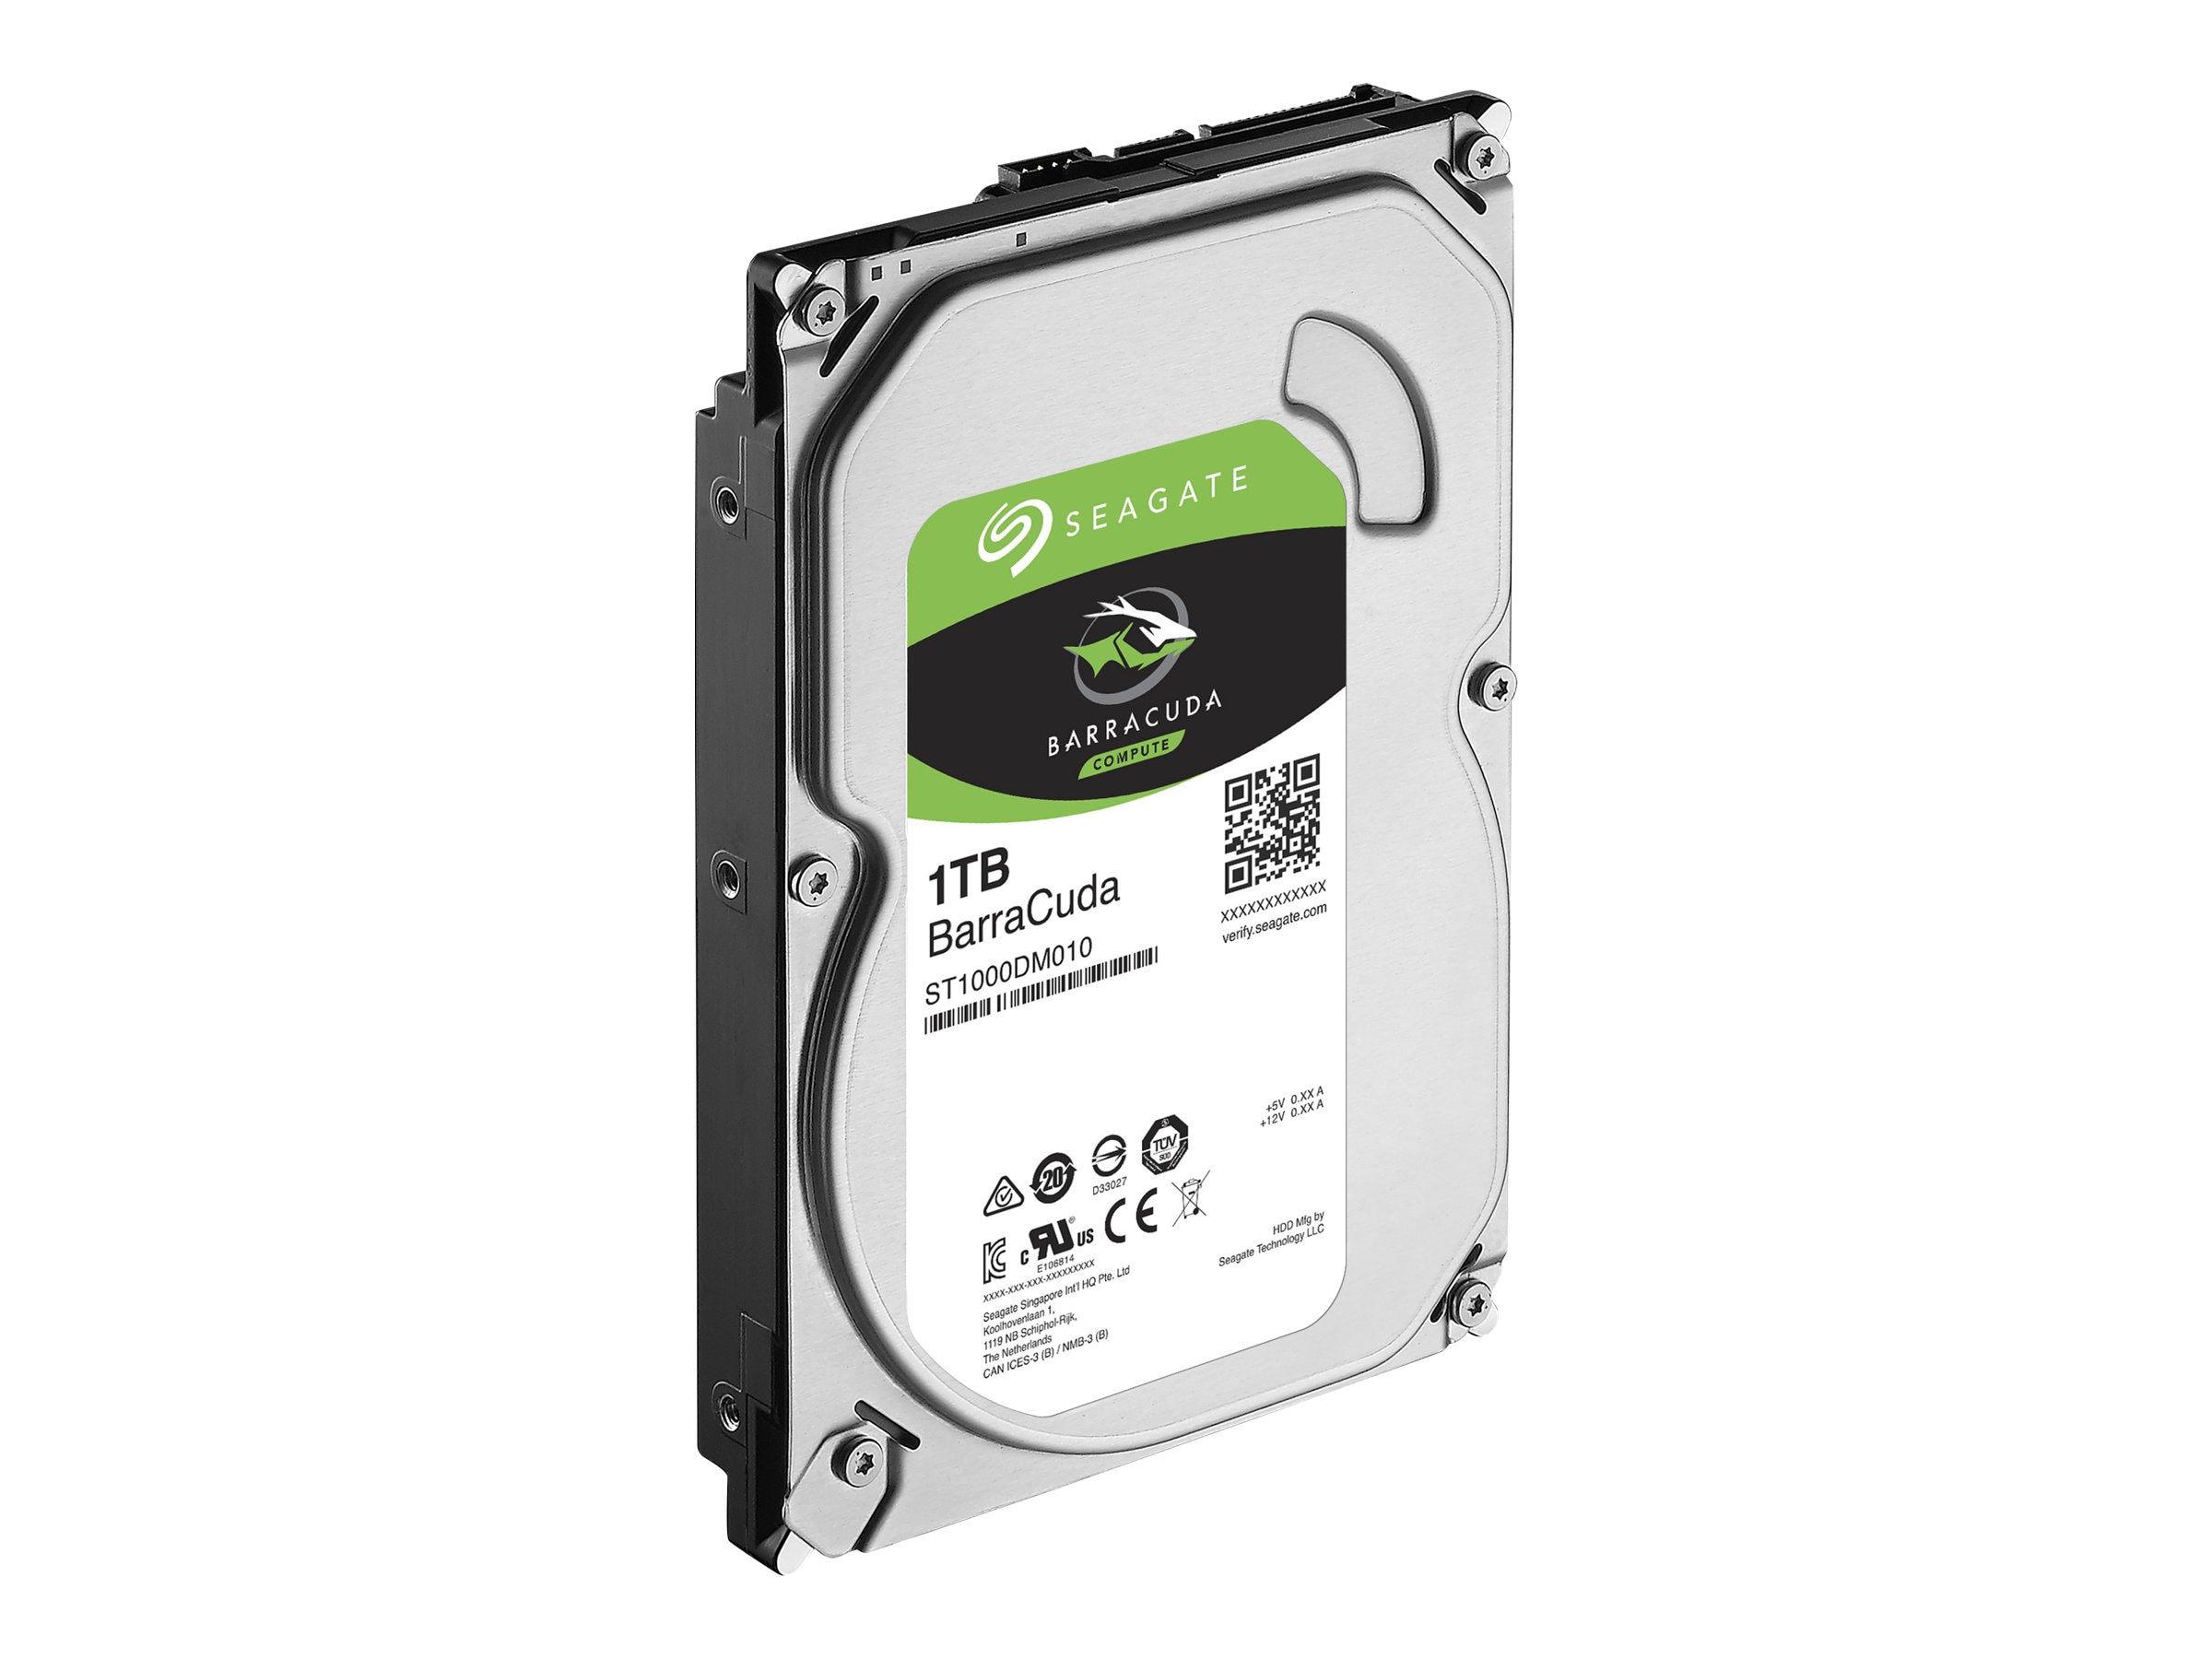 Seagate Technology ST1000DM010 Image 3